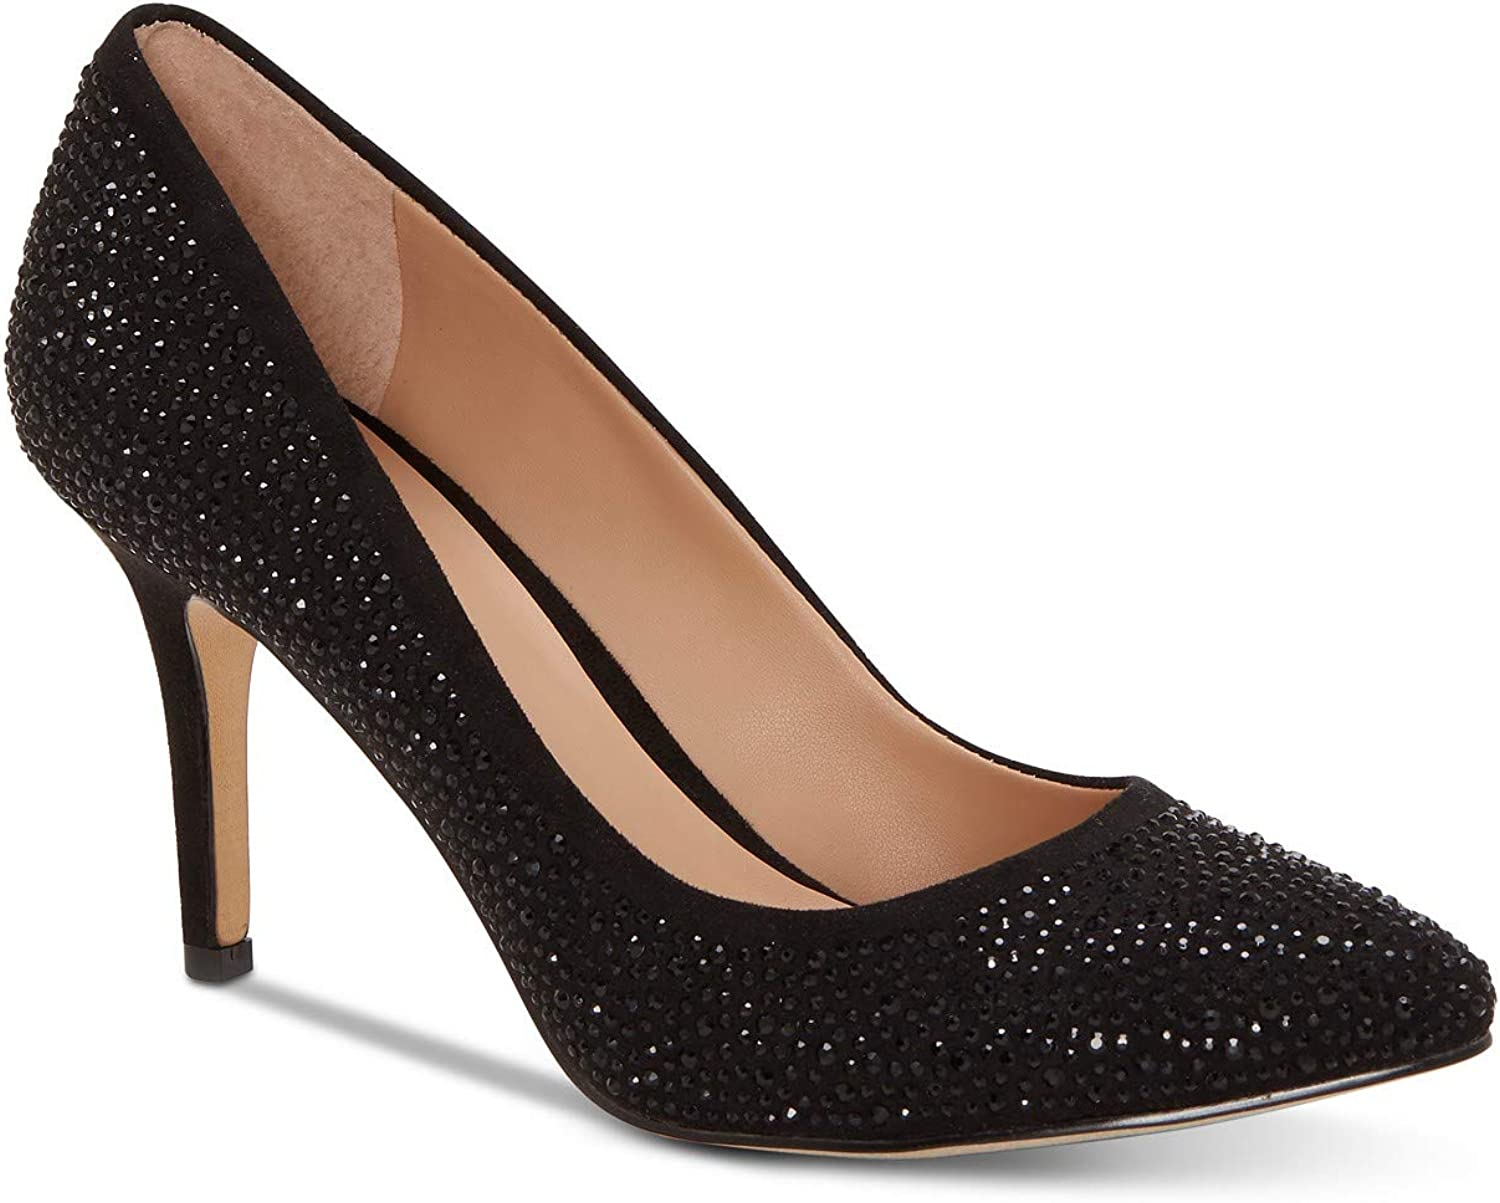 INC International Concepts Womens Zitah3 Pointed Toe Classic Pumps